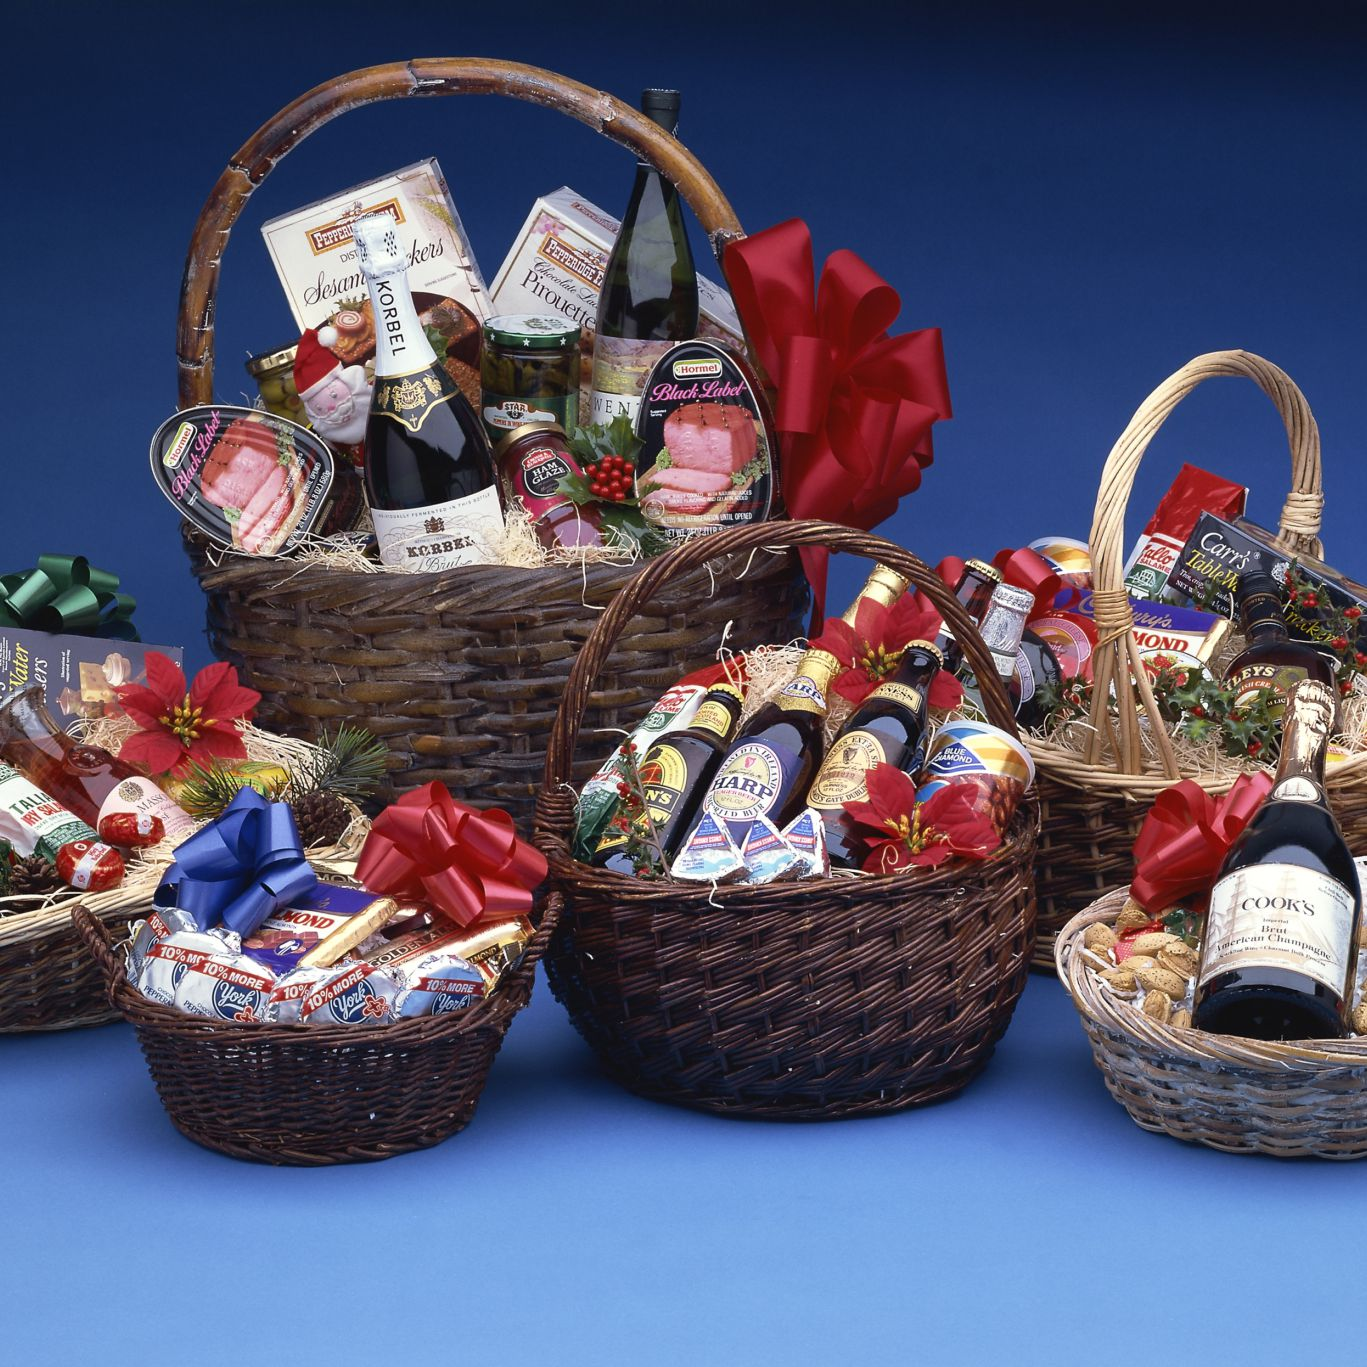 decorative baskets dried flowers small baskets country basket.htm diabetes friendly food and beverage gift basket ideas  food and beverage gift basket ideas